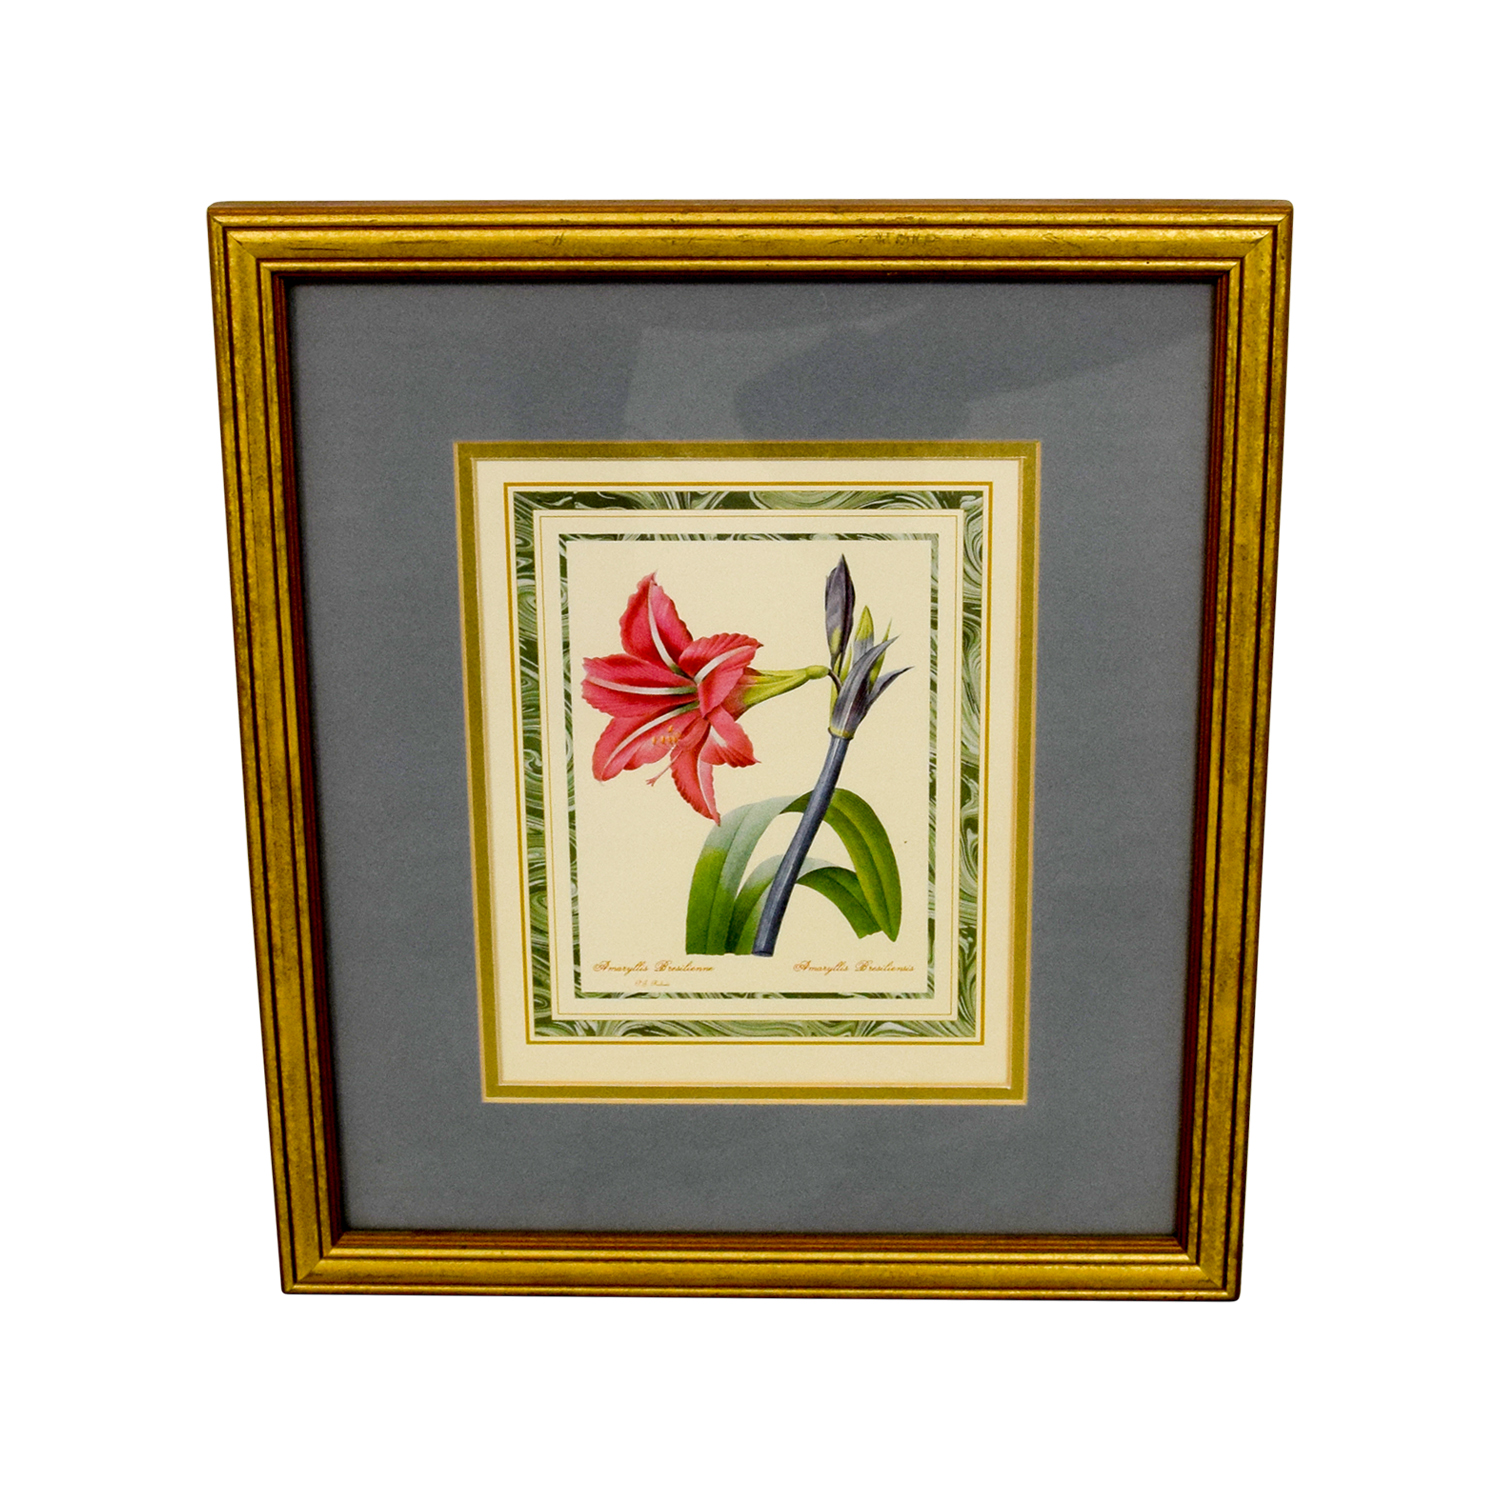 Scully & Scully Scully & Scully Gold Framed Botanical Print second hand